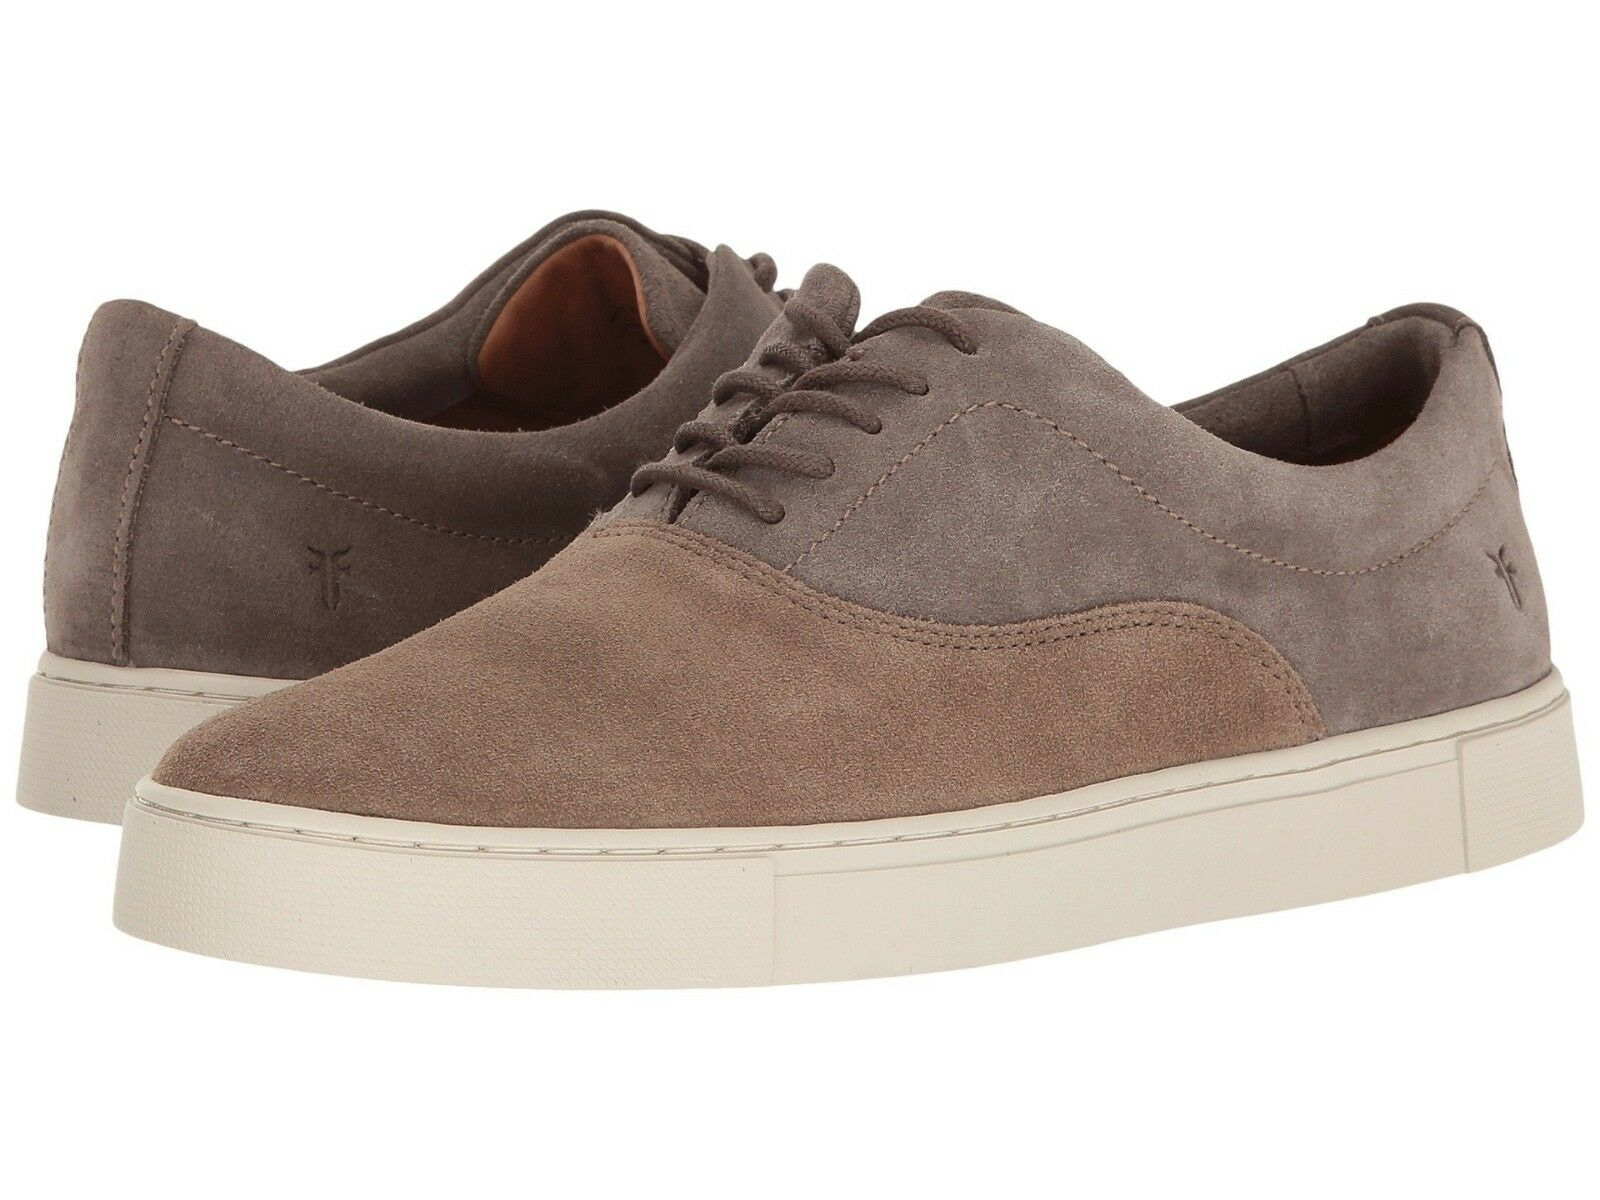 228 NIB NEW Men's Frye Gabe Bal Oxford Taupe Multi Suede Sneaker shoes